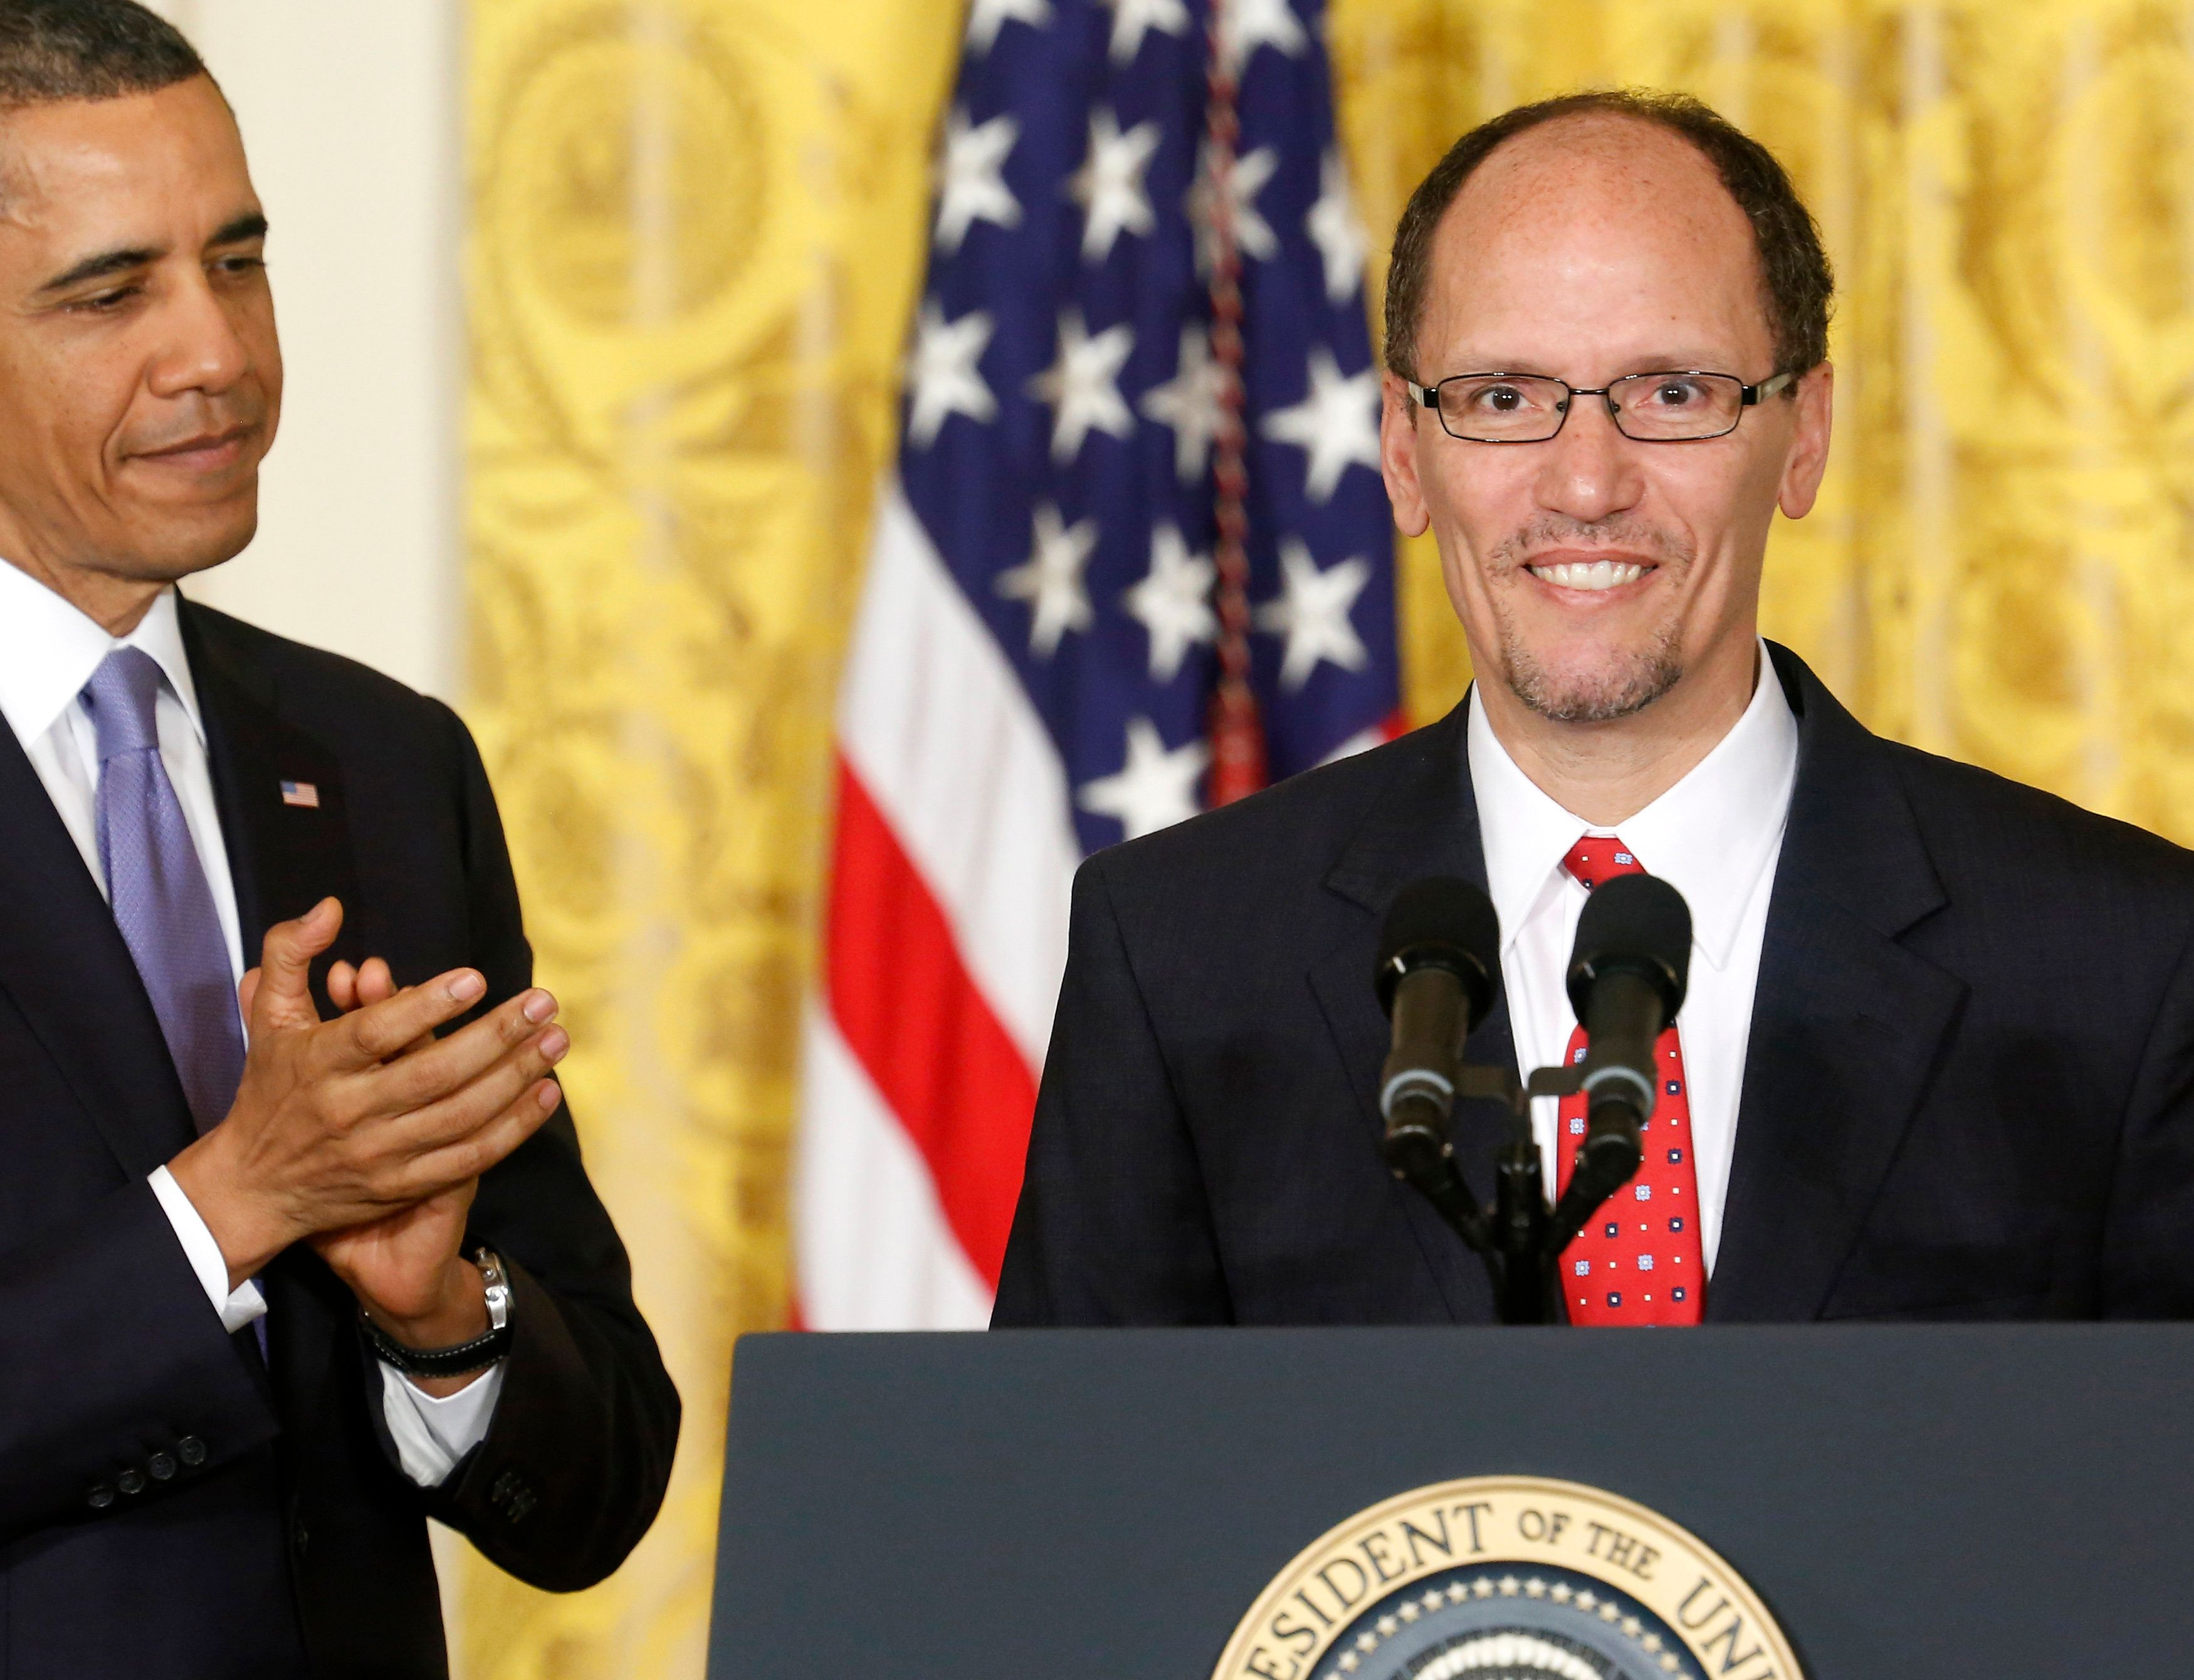 President Barack Obama is reportedly backing his labor secretary, Tom Perez, for DNC chair.